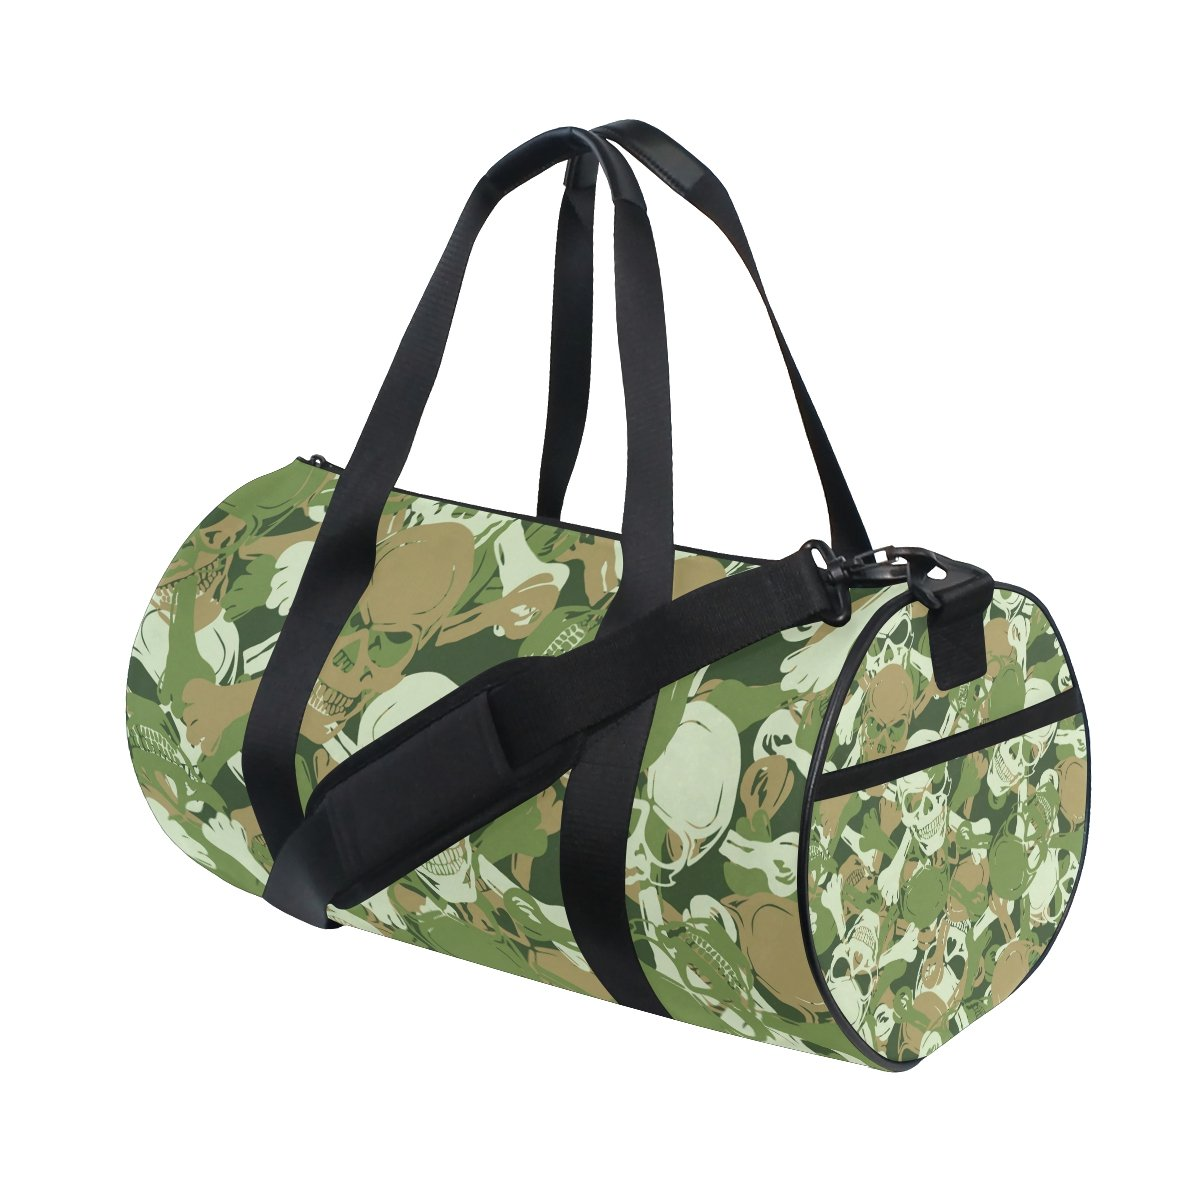 ISAOA Gym Bag Skull Camouflage Sports Duffel Bag for Women and Men Mnsruu cmb-001